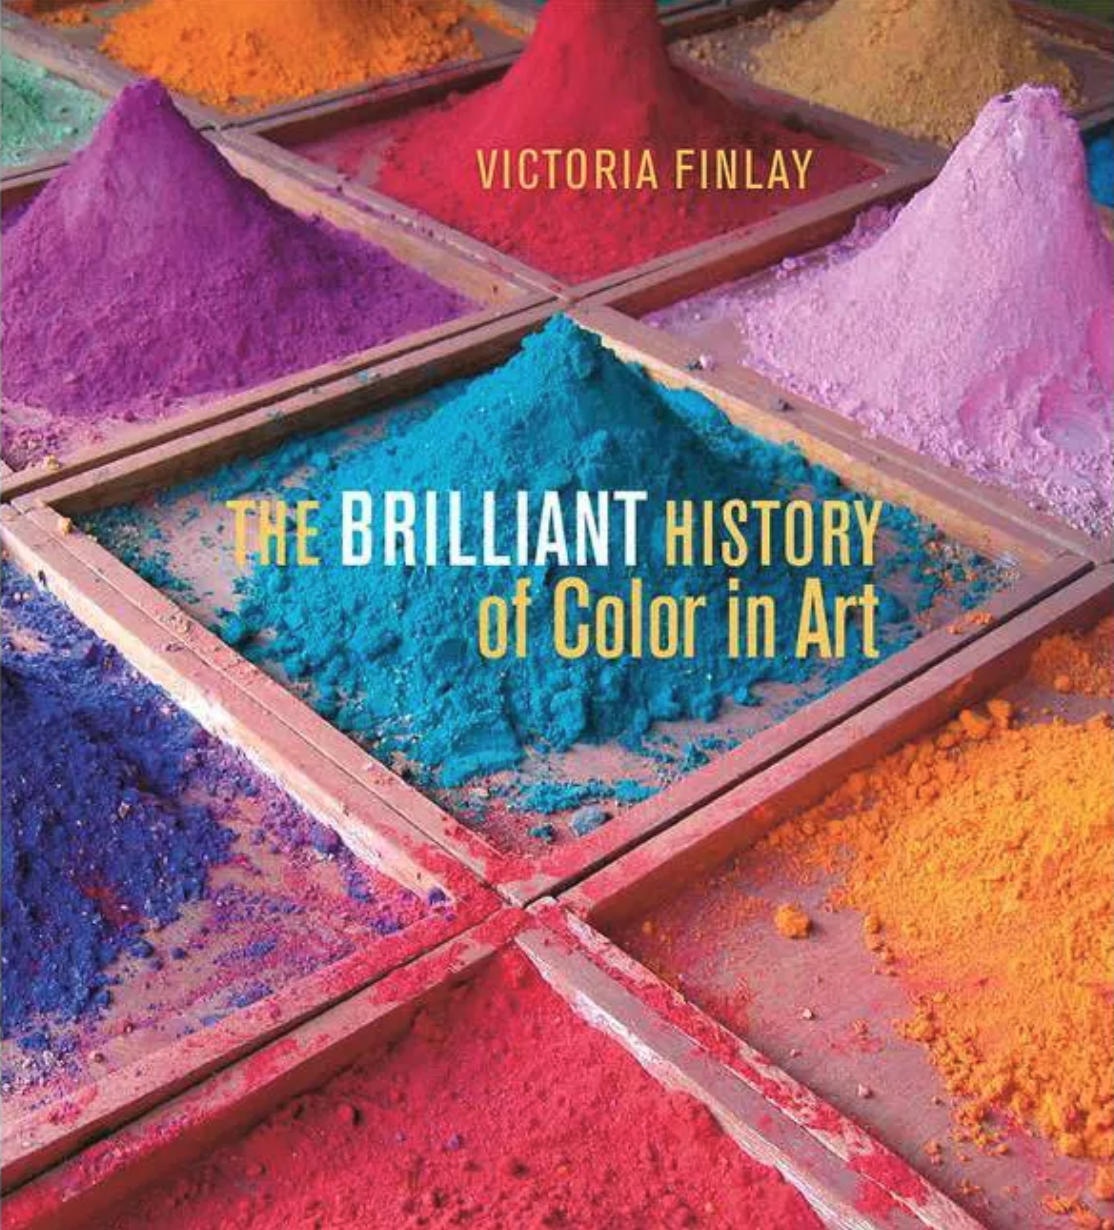 The Brilliant History of Color in Art by Victoria Finlay book cover